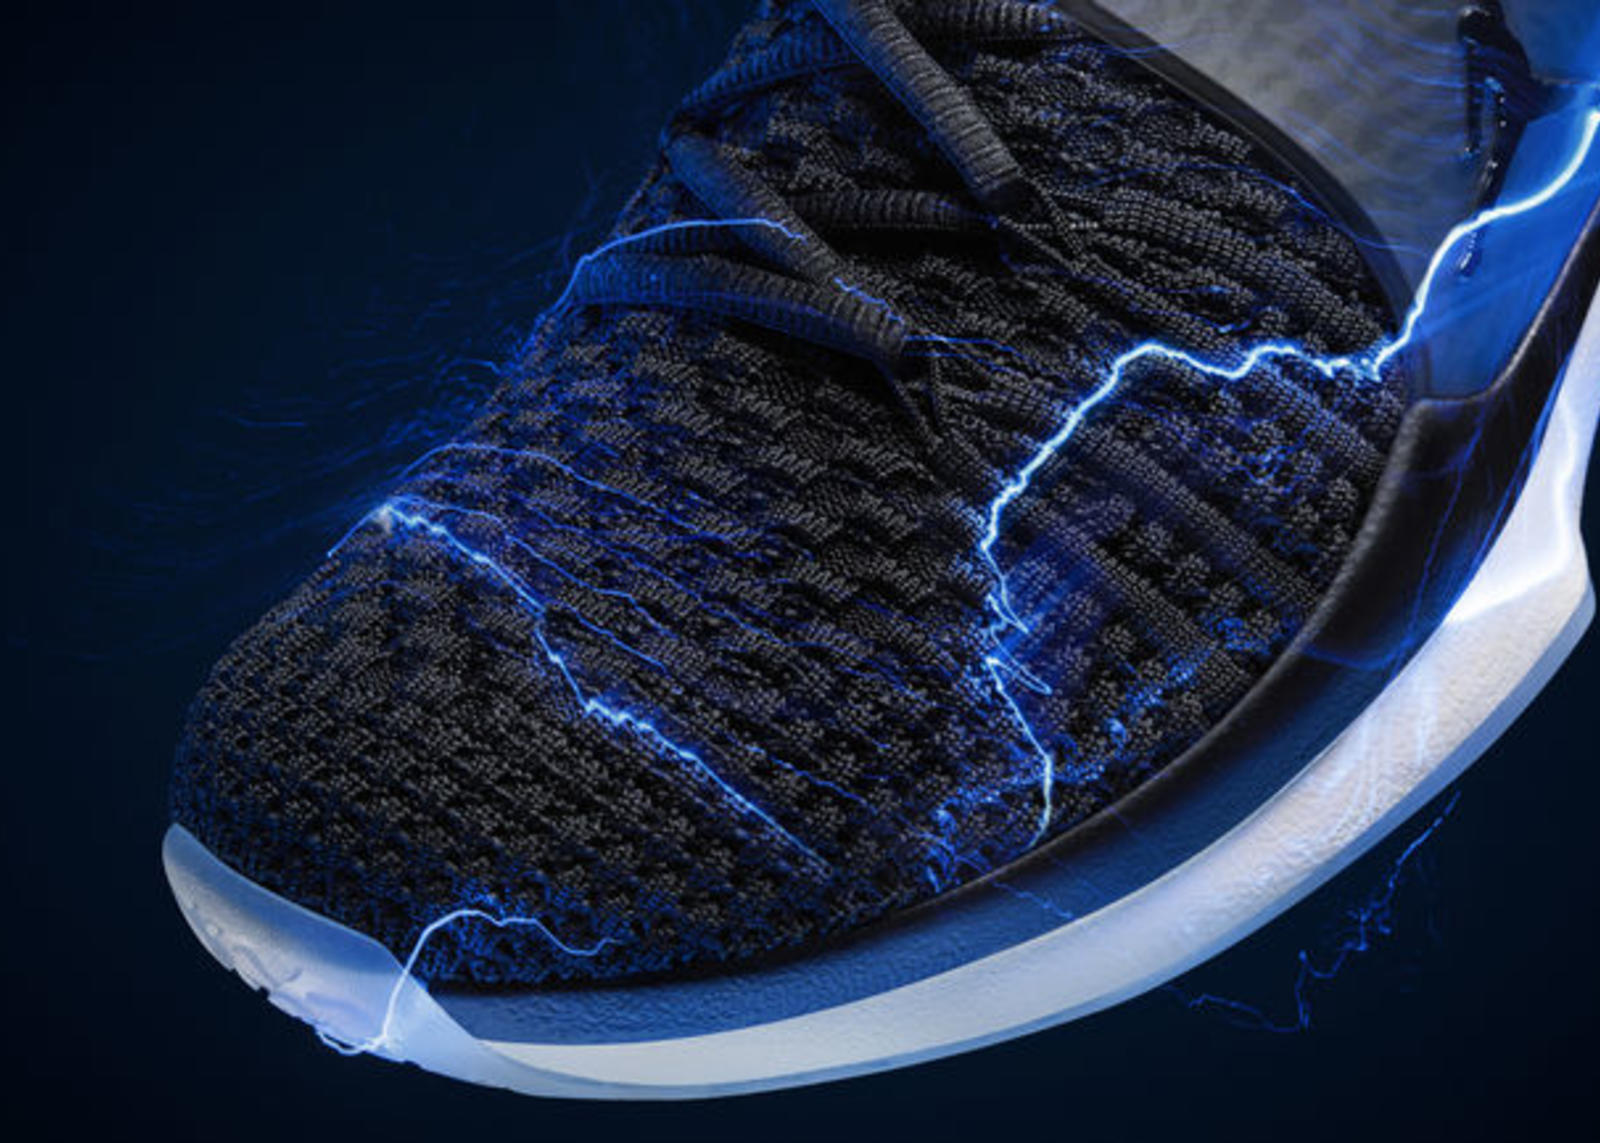 Introducing the Jordan Trainer 2 Flyknit 3